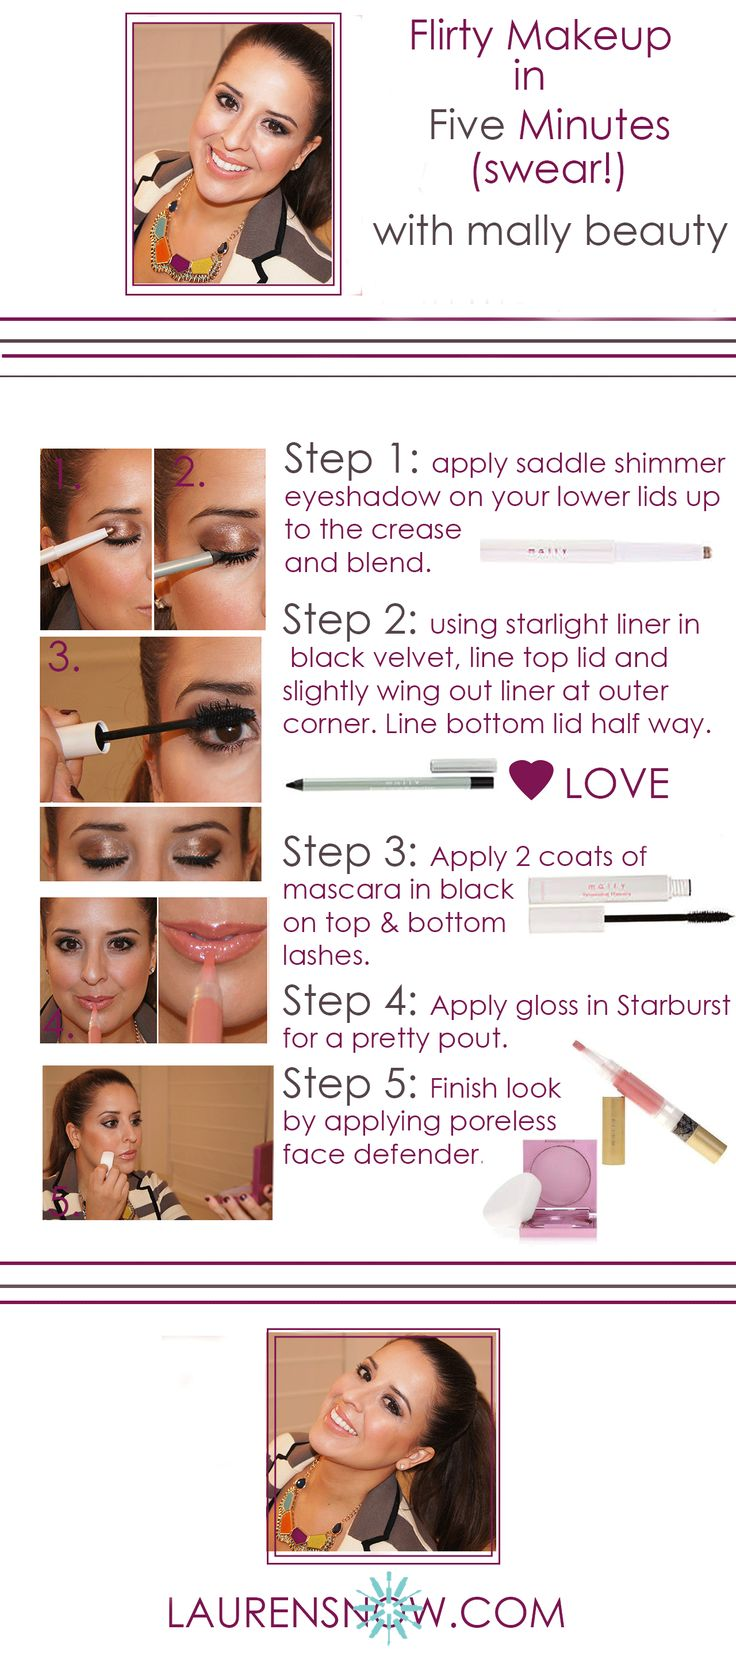 Visit http://laurensnow.com/ for more beauty tips! Mally Roncal. Mally Beauty. Fresh Face Makeup. Flirty Makeup. Makeup Tips. Makeup Tutorial. Lauren Snow. Lauren Snow Blog. Quick Makeup. Five Minute Makeup. Easy Makeup.